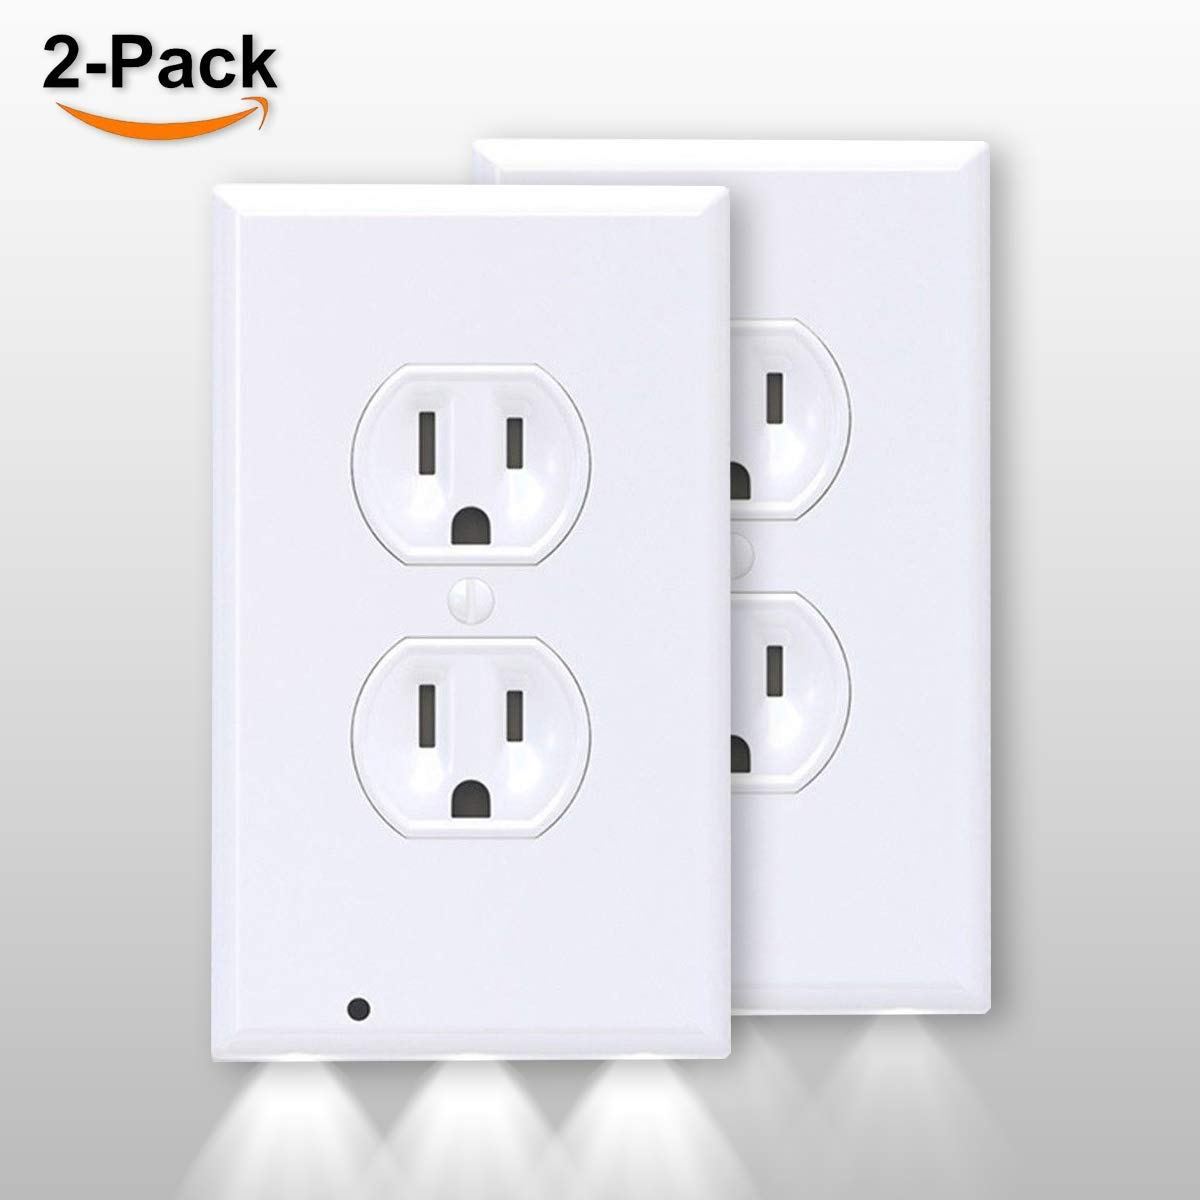 2 Pack SnapLight Safety Light - Wall Outlet Plate With LED Night Light Lighting - No Batteries or Wires - Duplex, White (2)